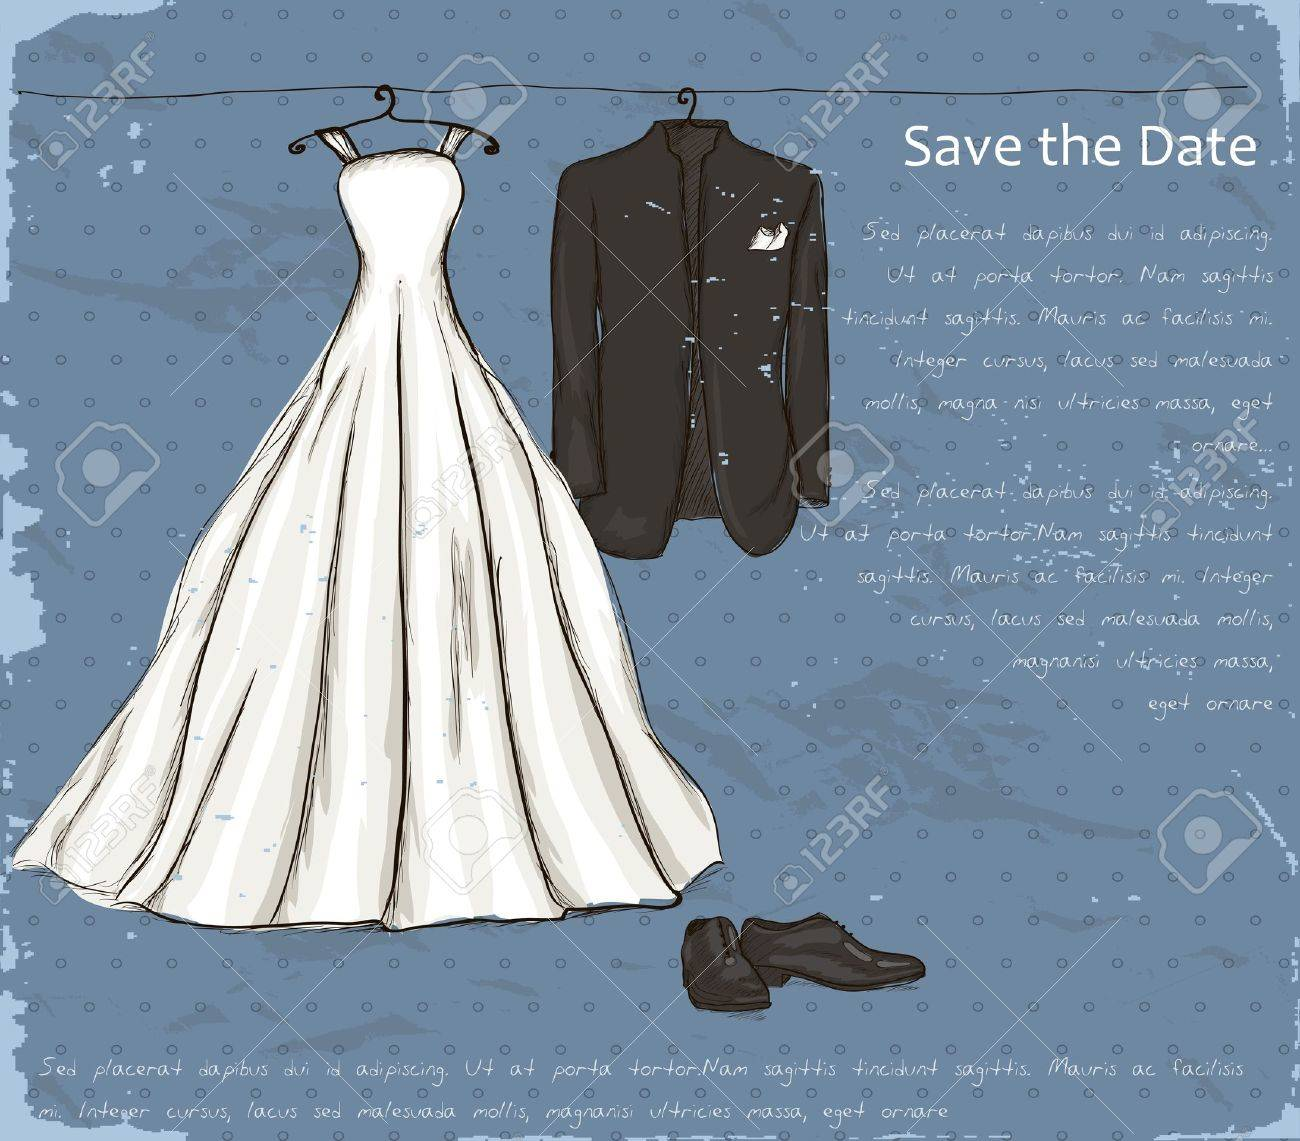 Vintage Poster With With A Wedding Dress And Tuxedo Illustration ...